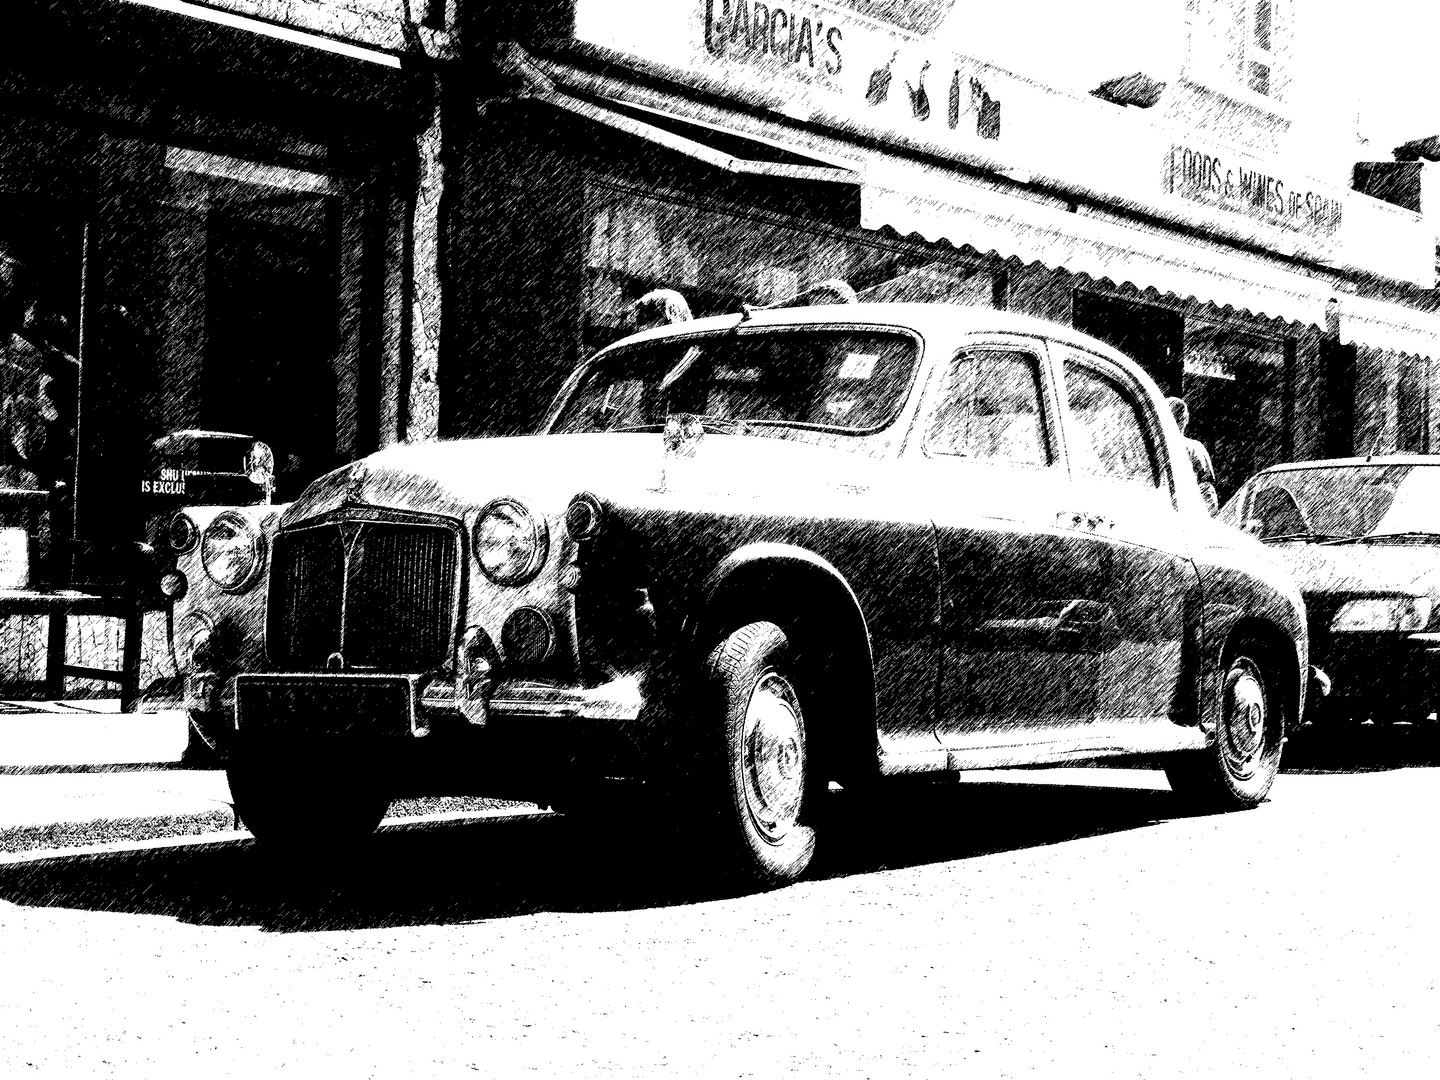 classic car in the city of london...